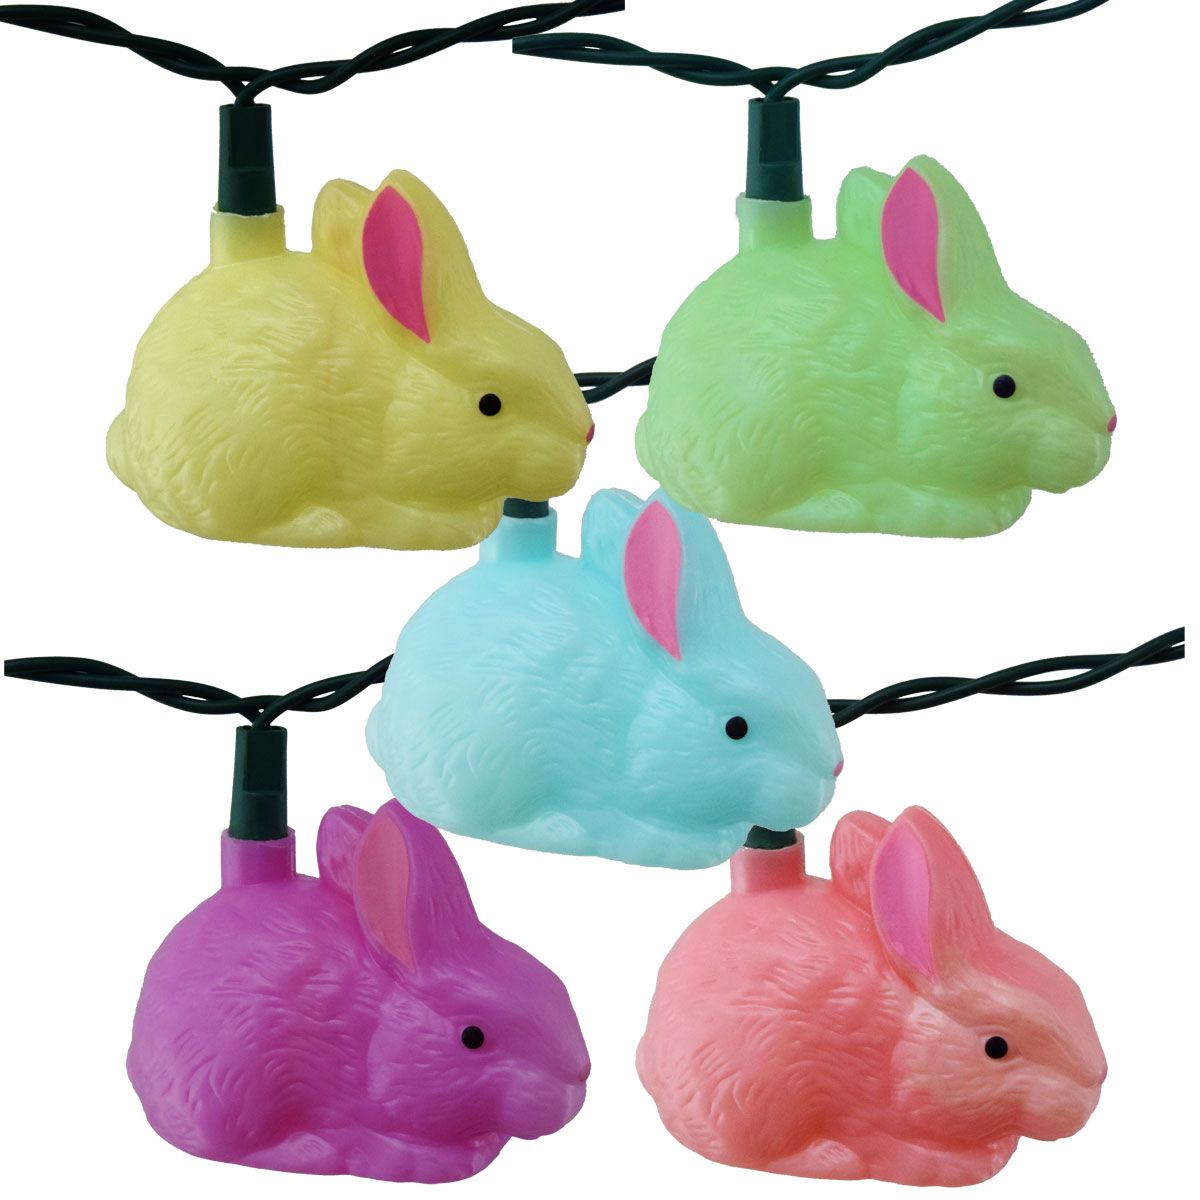 Outdoor Easter Lights These bunny party string lights are an easy way to brighten up your easter lights workwithnaturefo